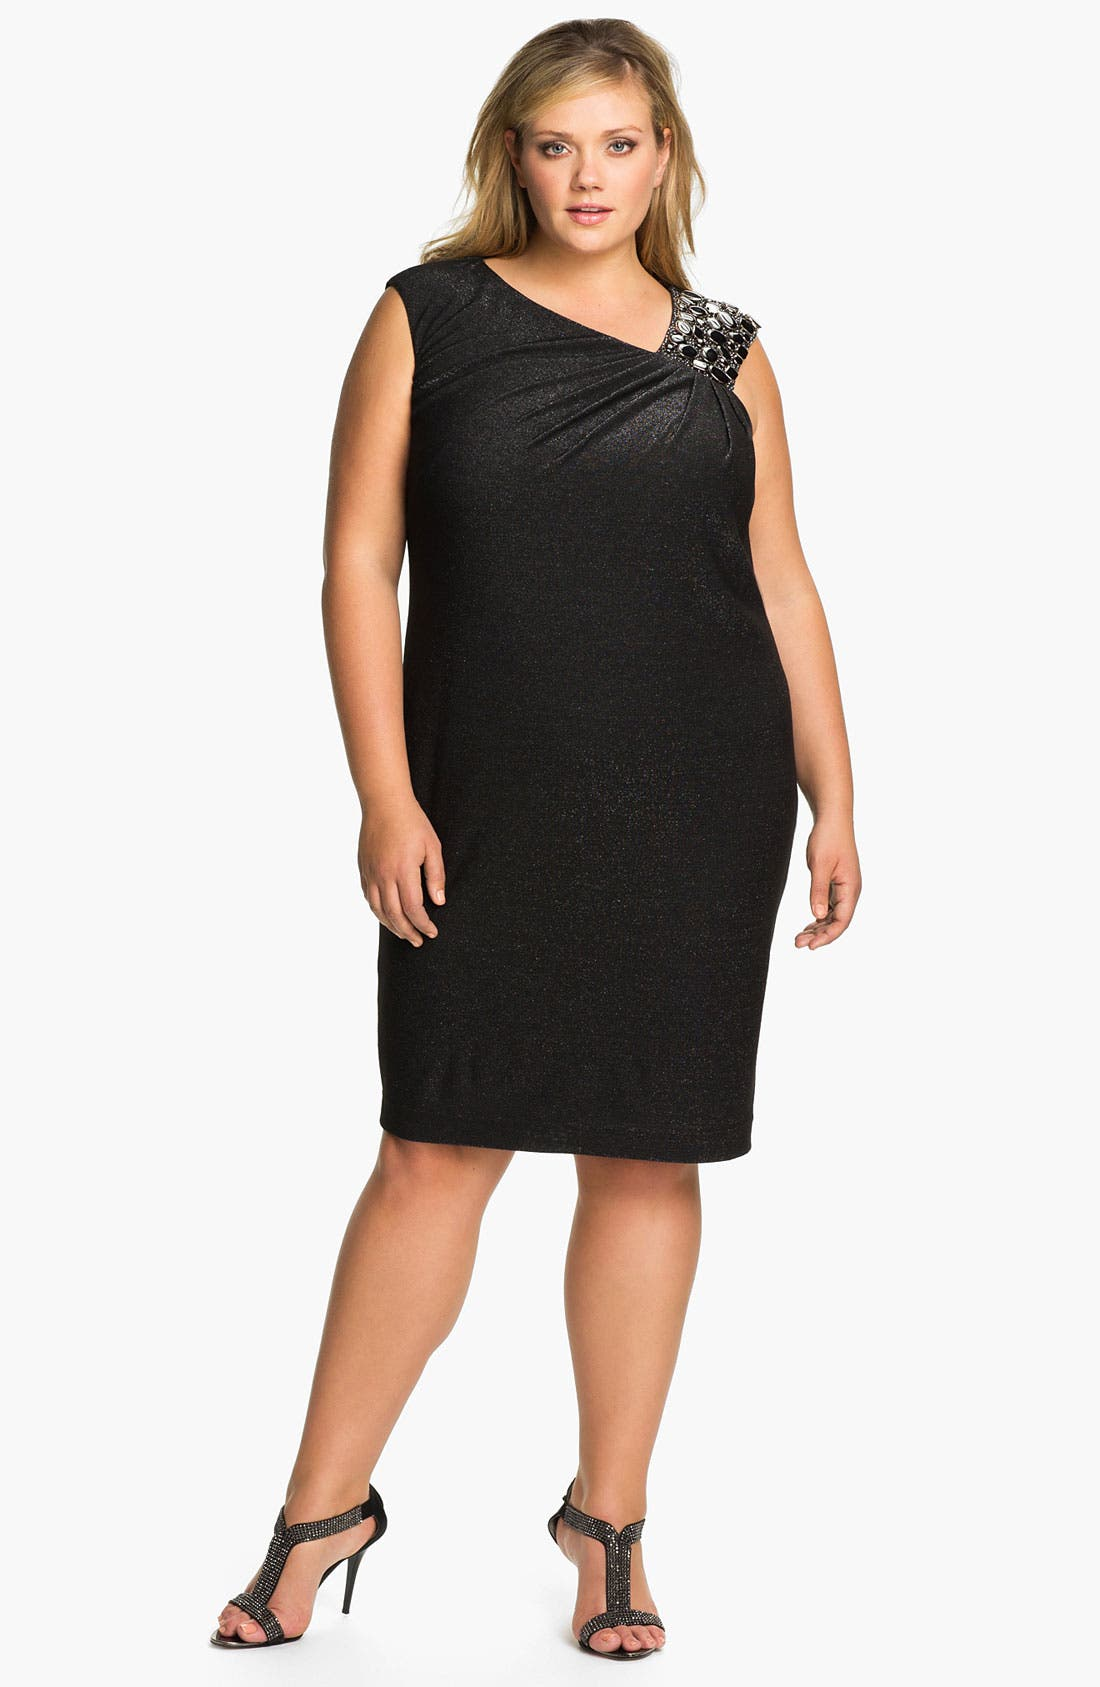 Alternate Image 1 Selected - Adrianna Papell Beaded Shoulder Jersey Shift Dress (Plus)